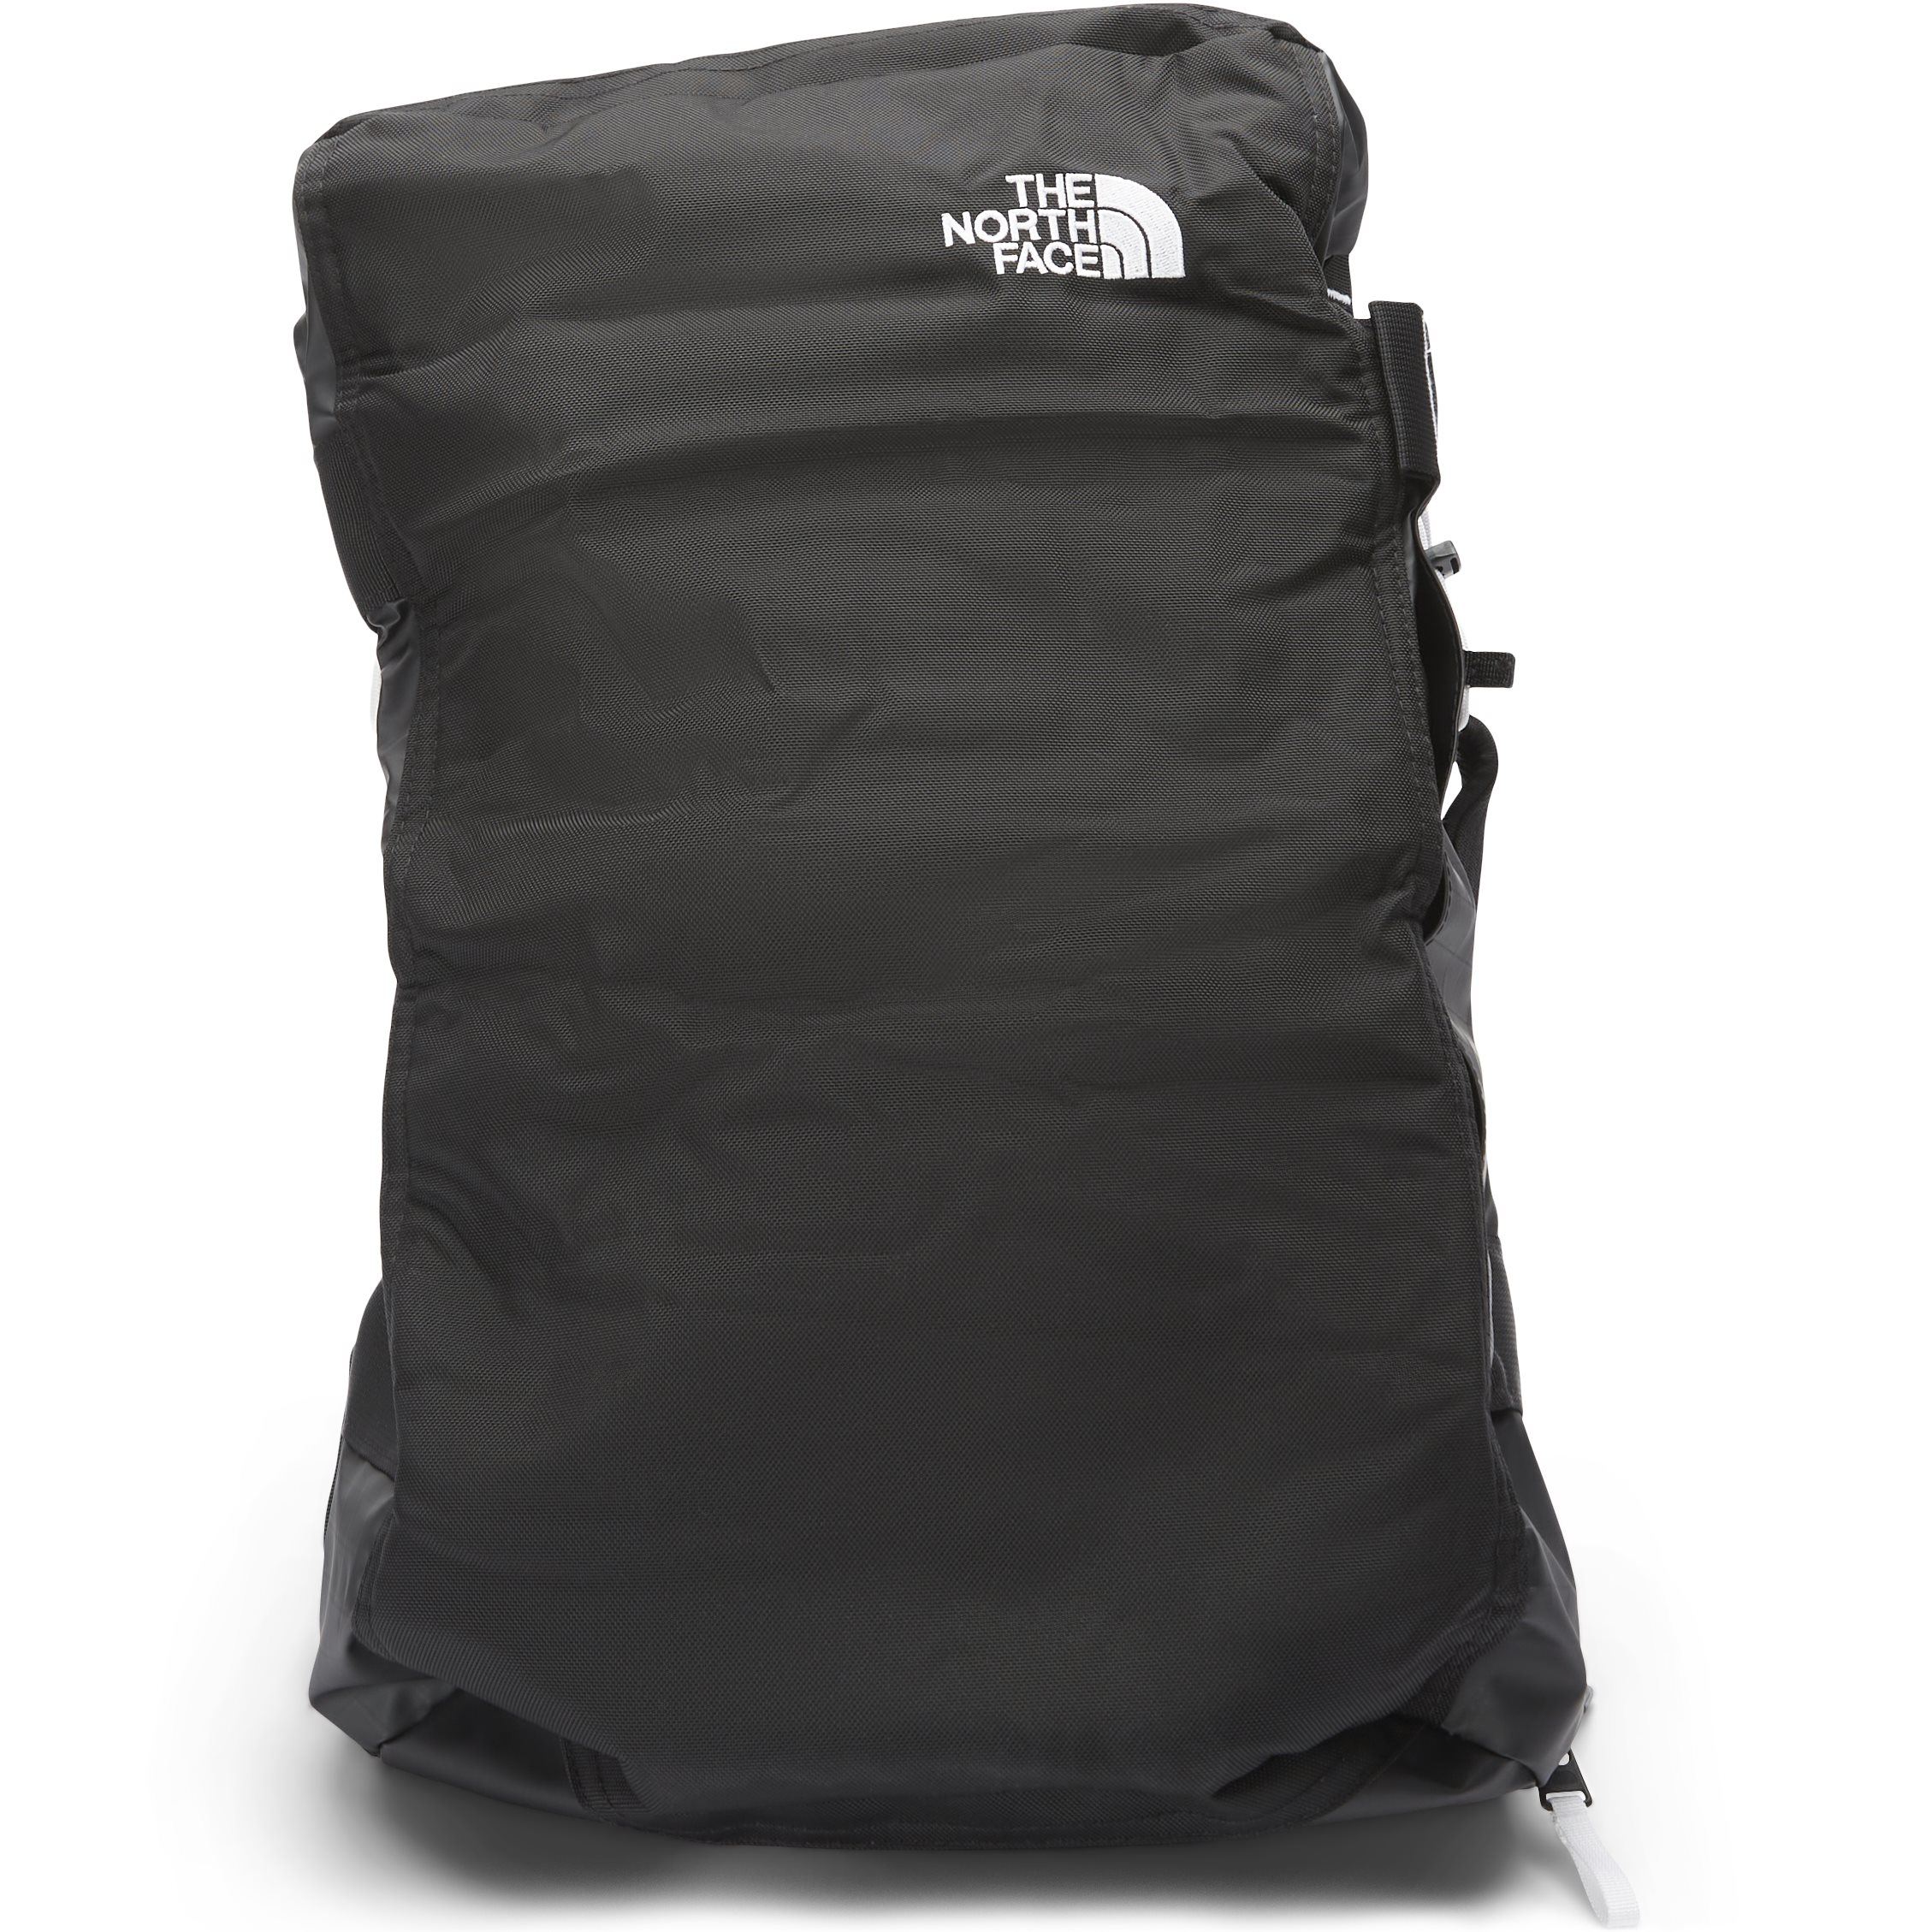 Base Camp Voyager Duffel Bag - Tasker - Sort